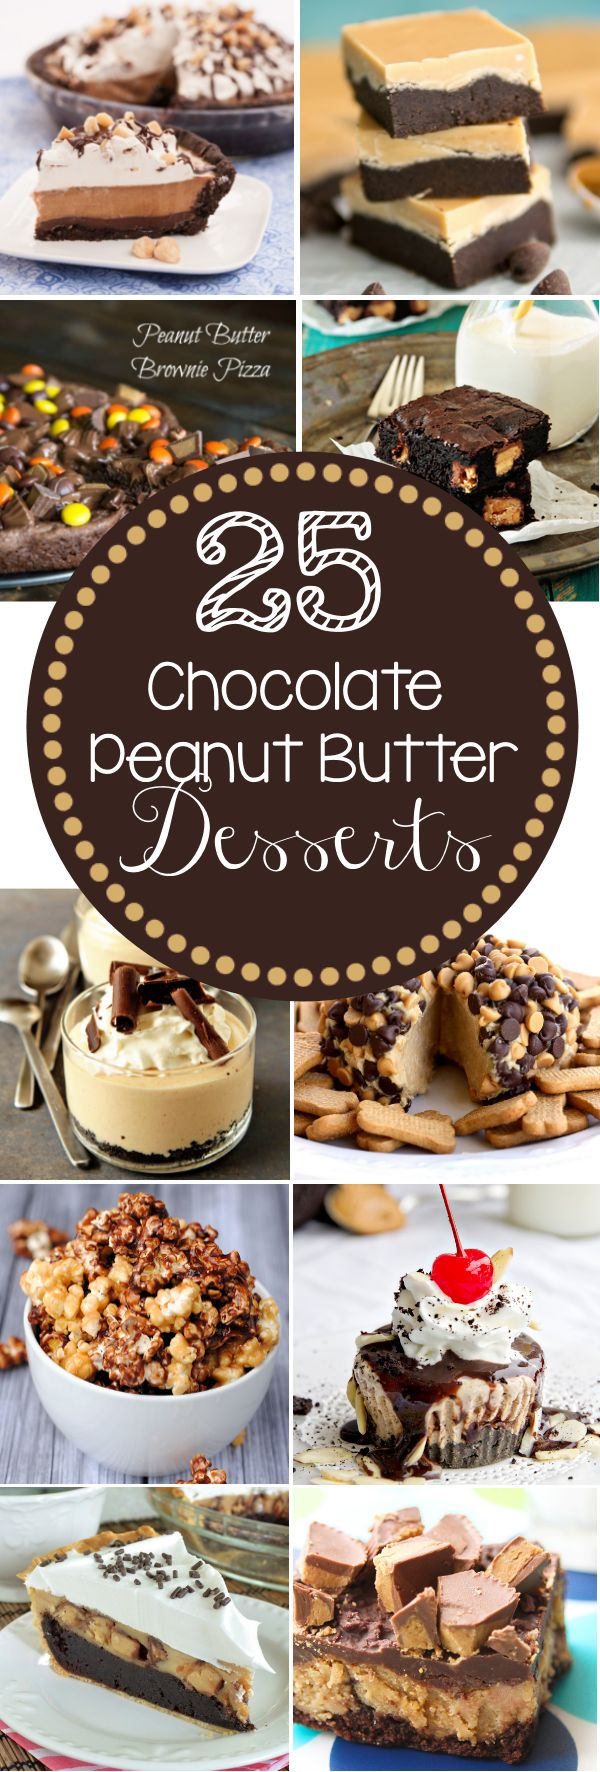 Chocolate Peanut Butter Popcorn & 25 More Chocolate Peanut Butter Desserts - Crazy Little Projects